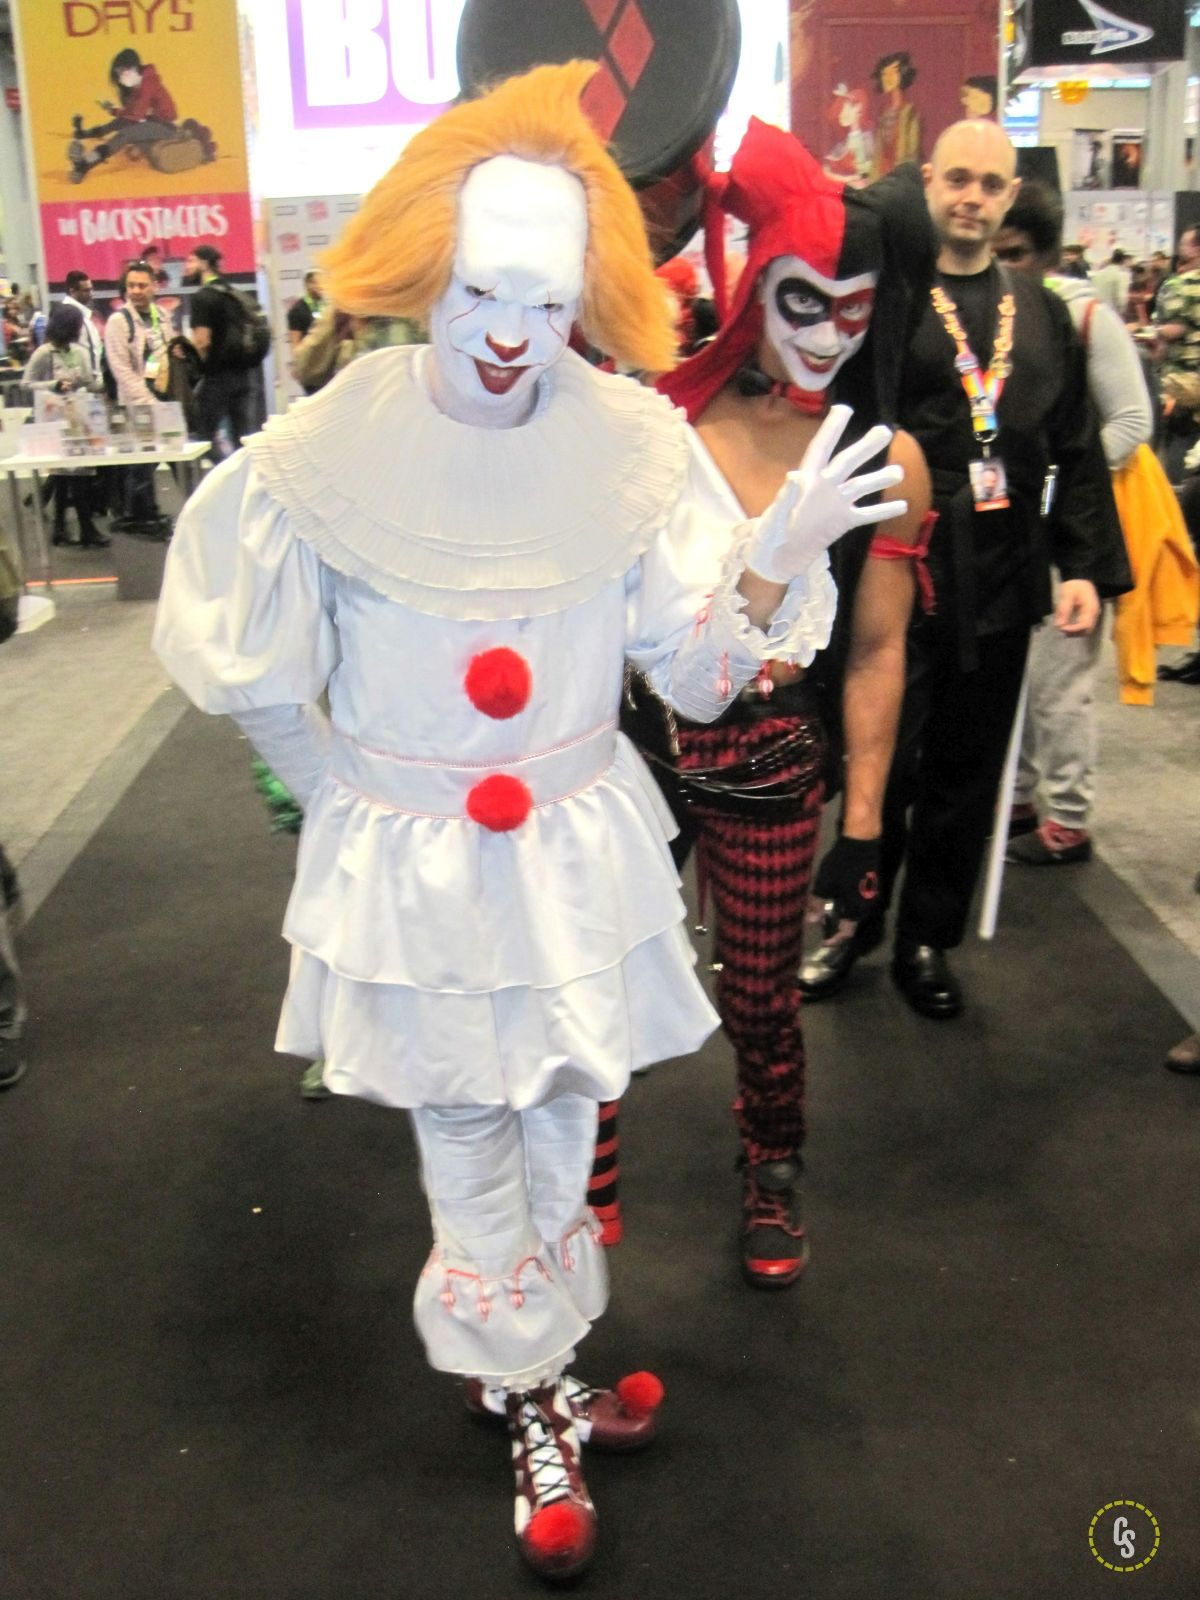 nycc183_045